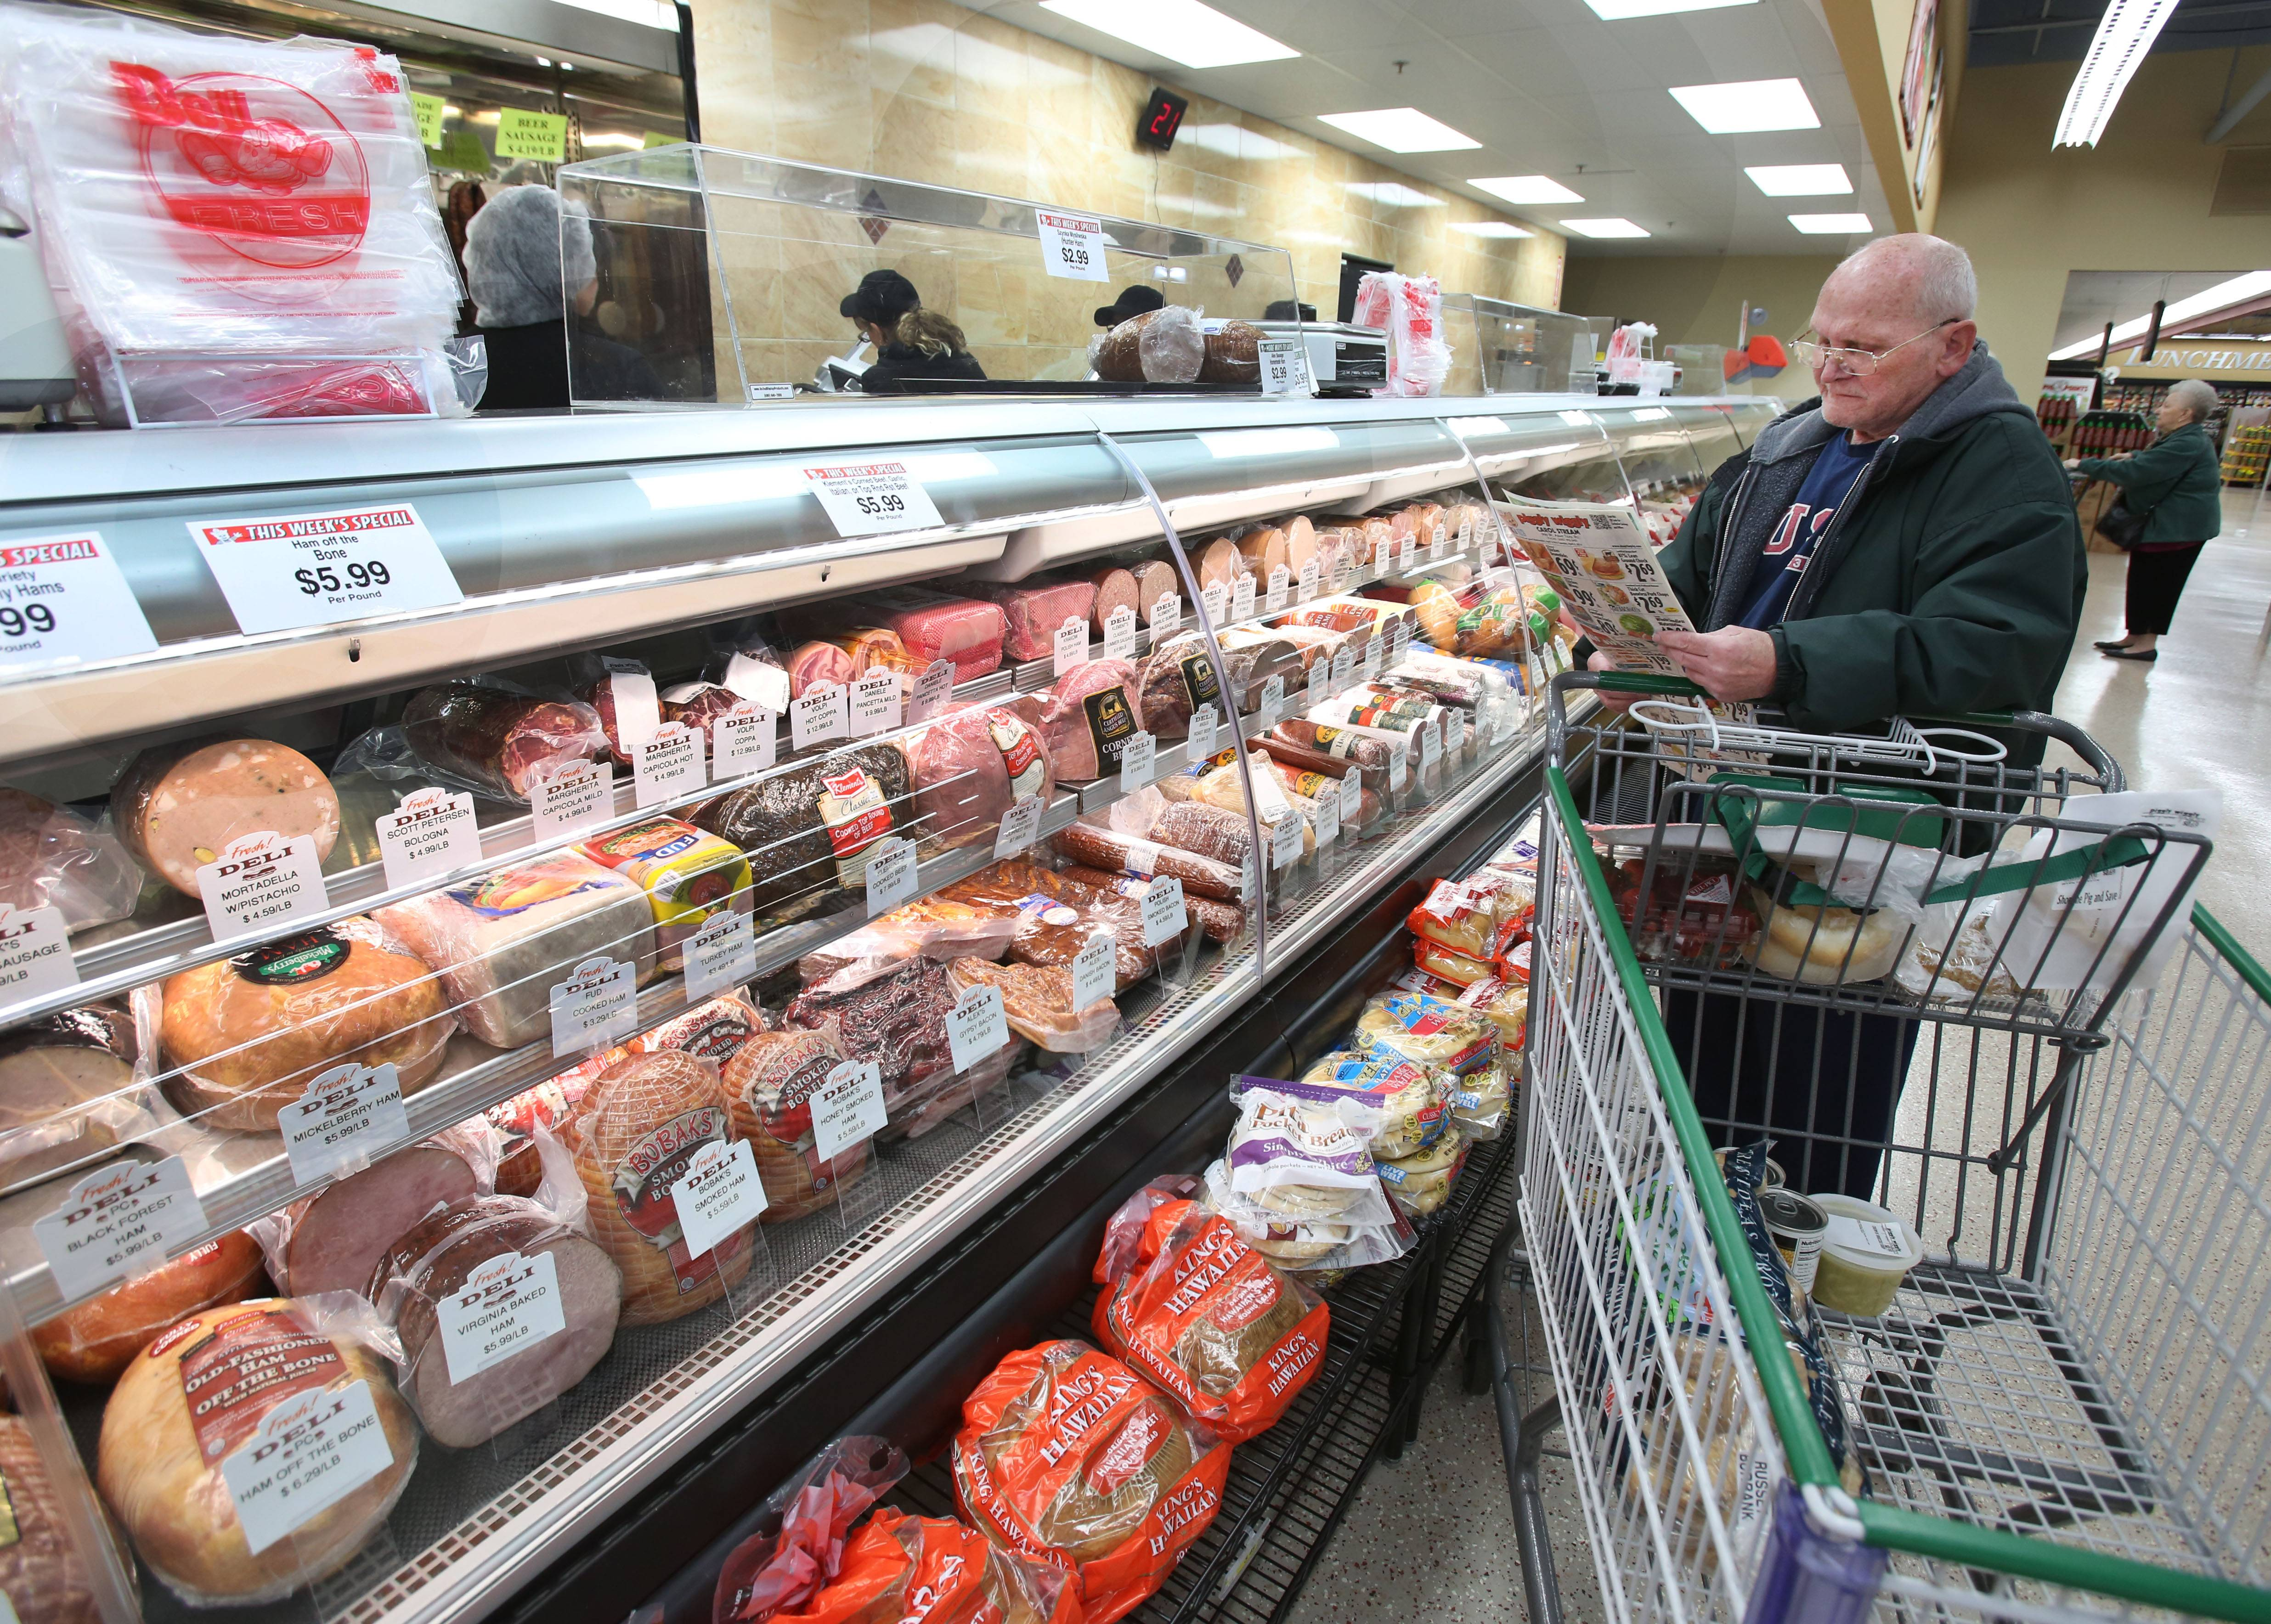 Richard Haiman of Hanover Park waits for an order at the deli in the new Piggly Wiggly grocery store in Carol Stream.